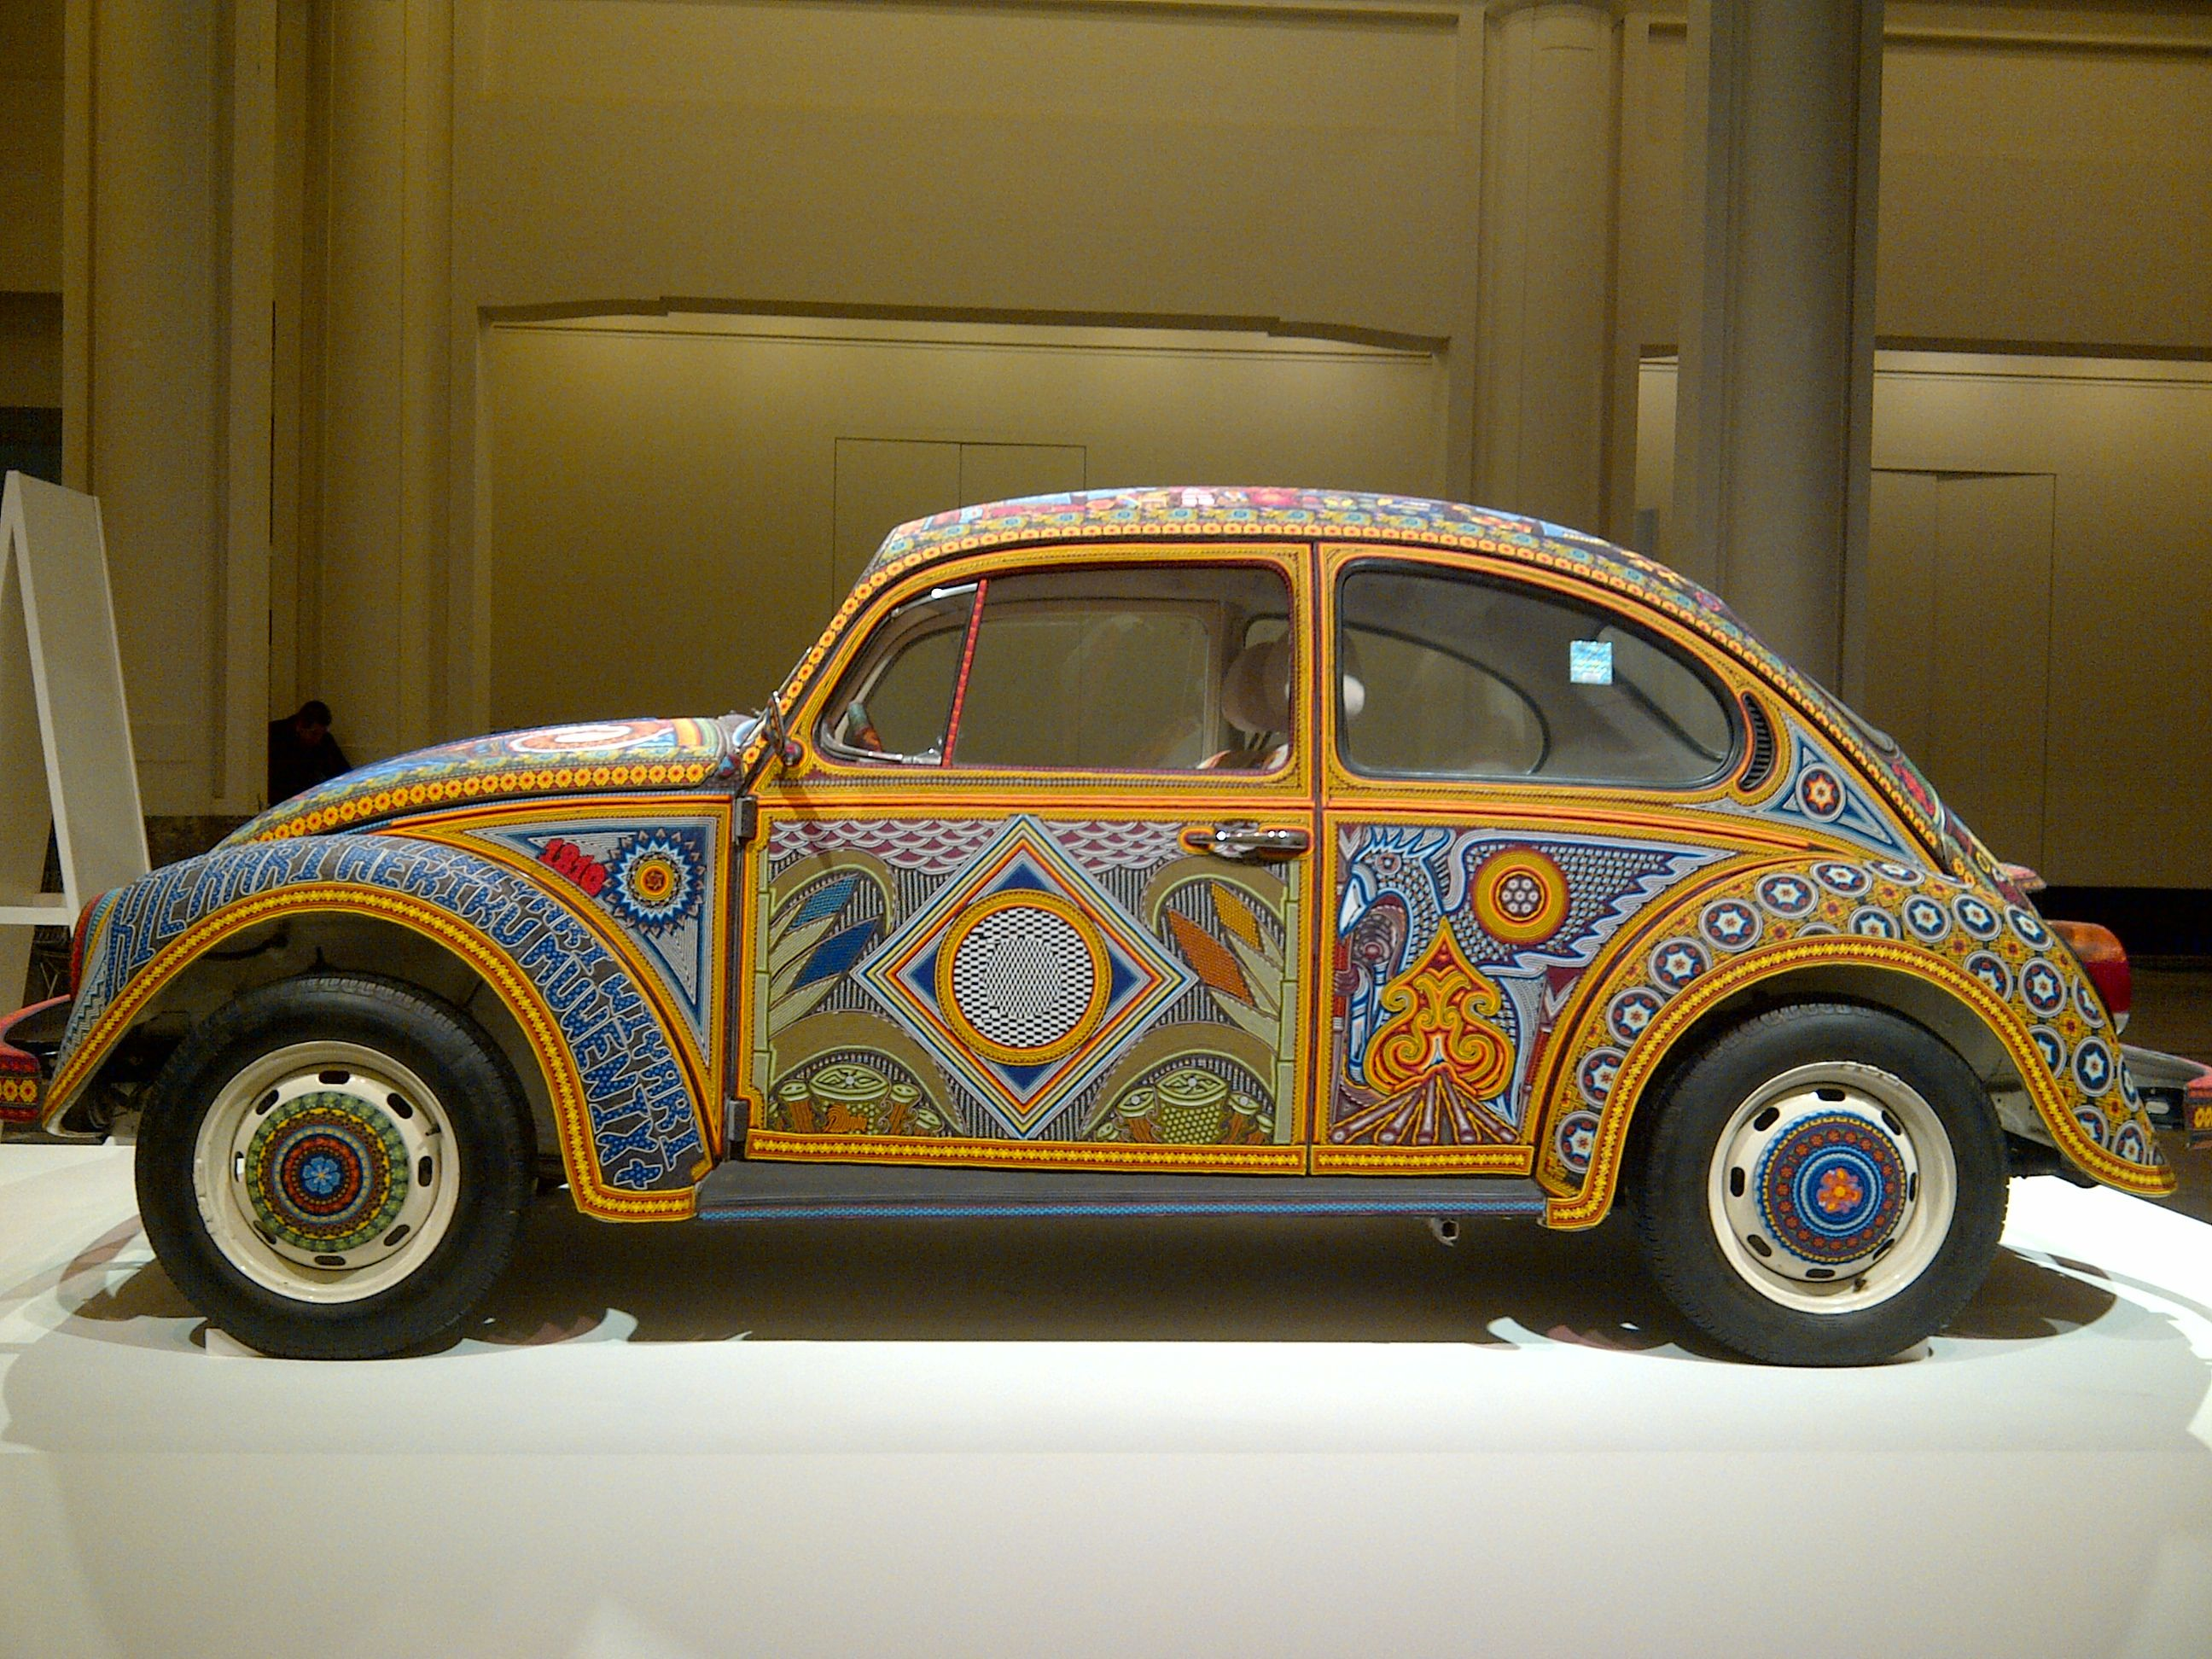 Huichol art on wheels exhibited in bozar brussels in february 2013 2 277 000 pearls